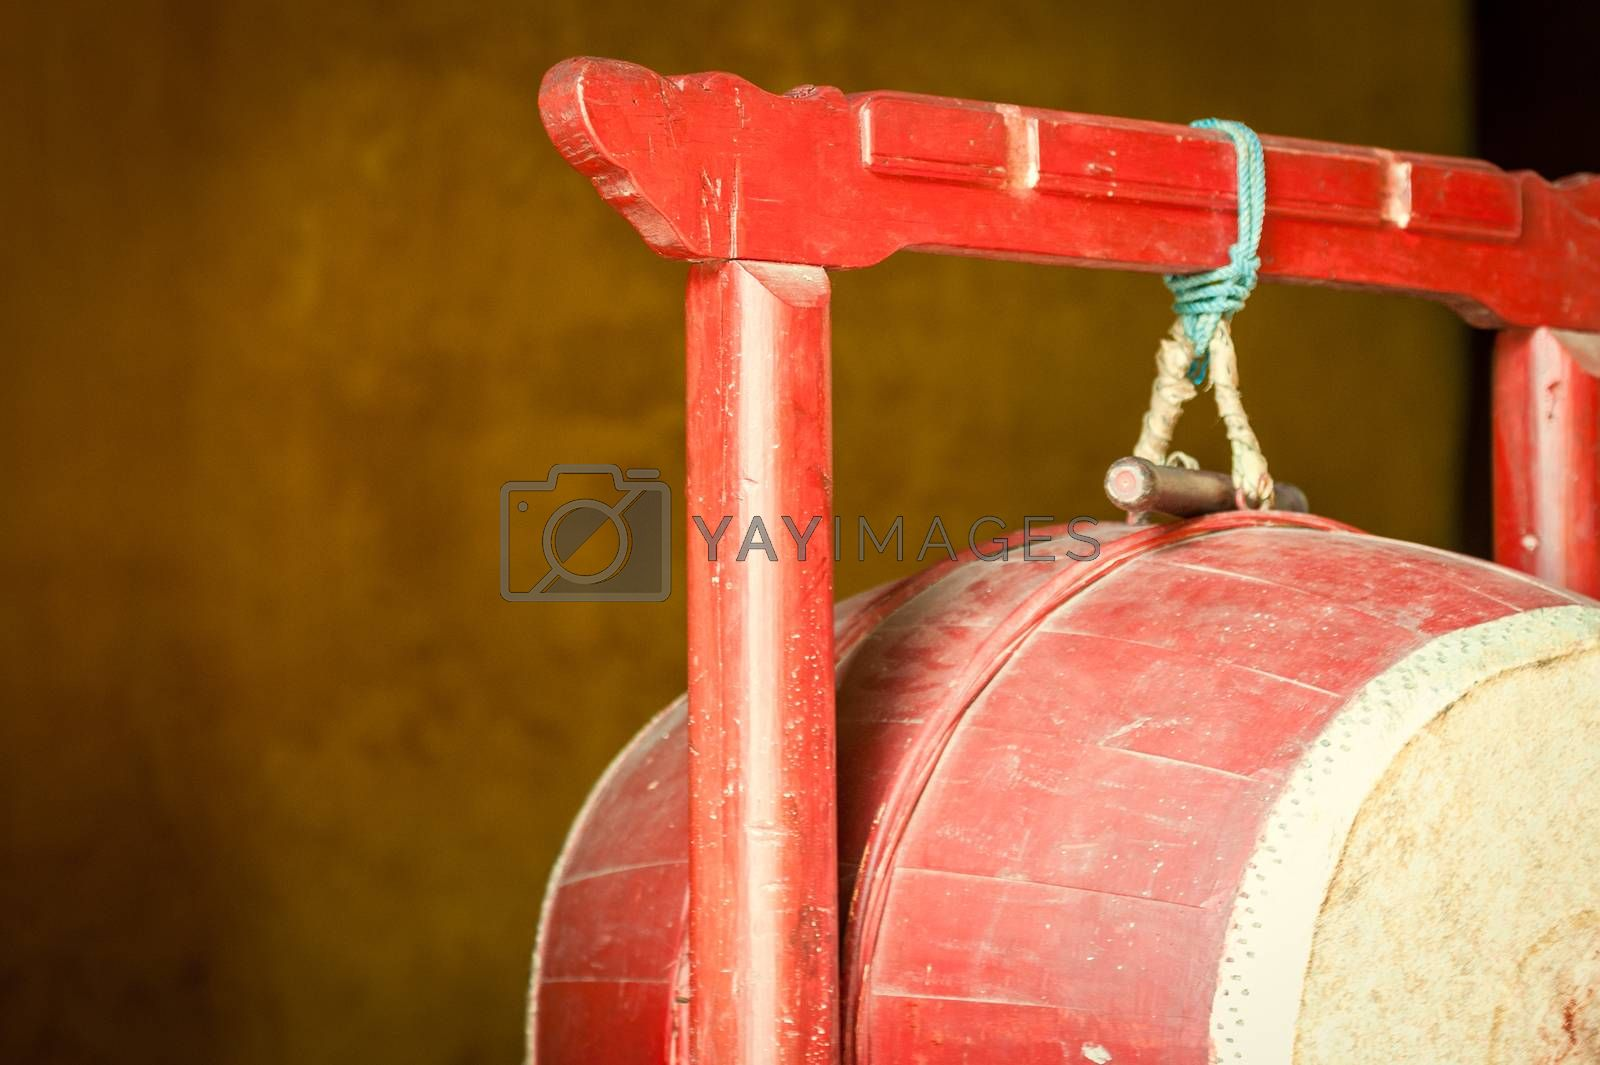 Detail of red drum hanging on red wooden rack in Buddhist temple. Religious attributes used in ceremony. Religion and traditions of East. Symbol of Asian faith and culture.